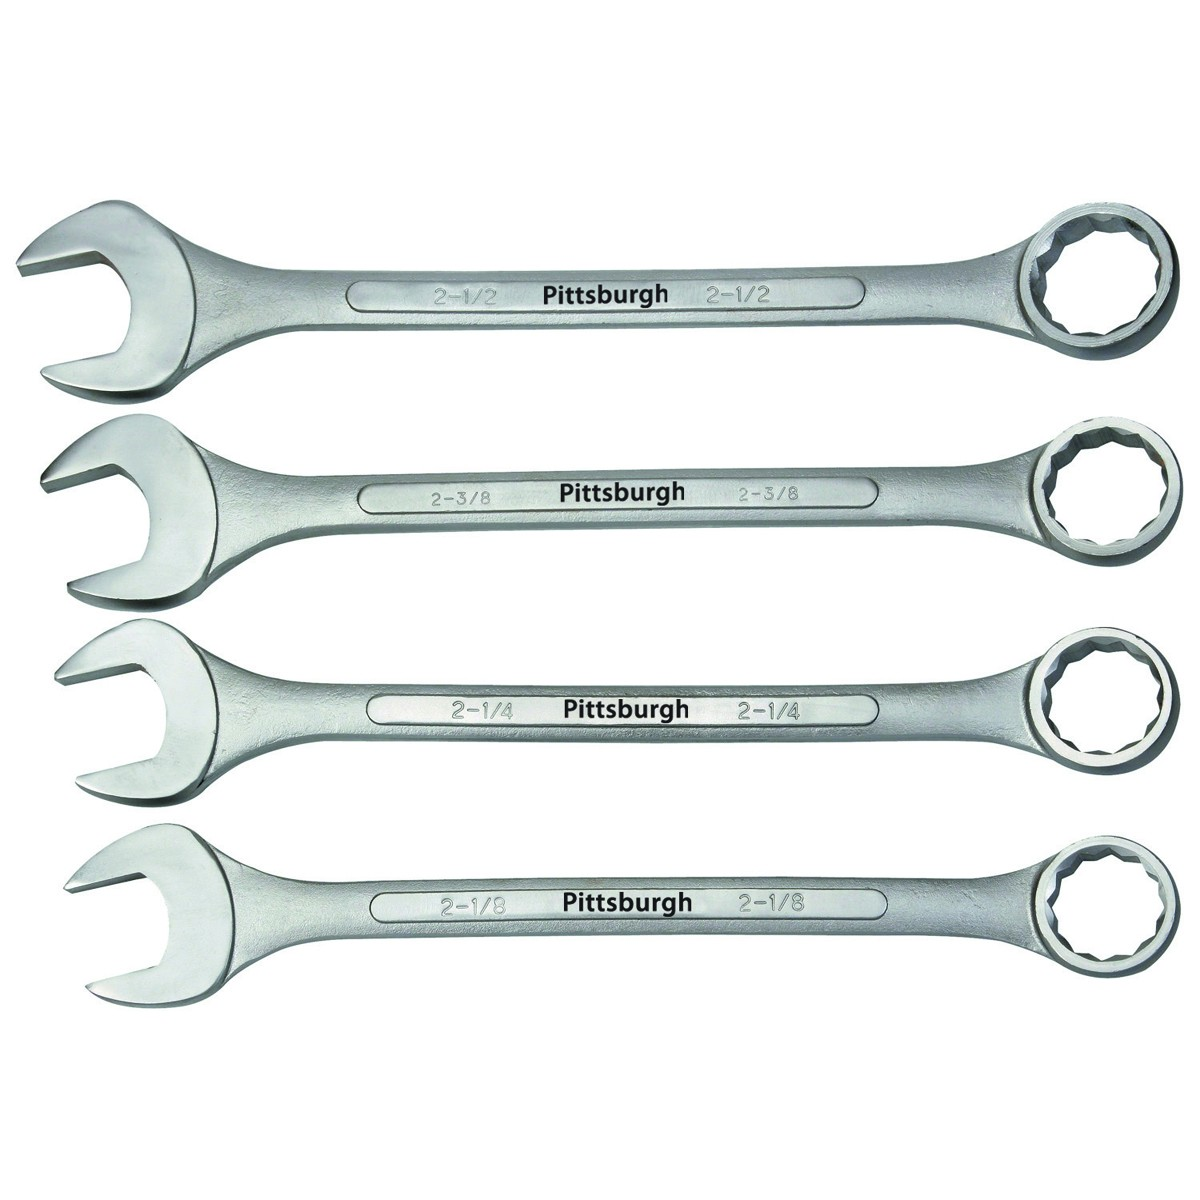 4 Pc SAE Super Jumbo Combination Wrench Set